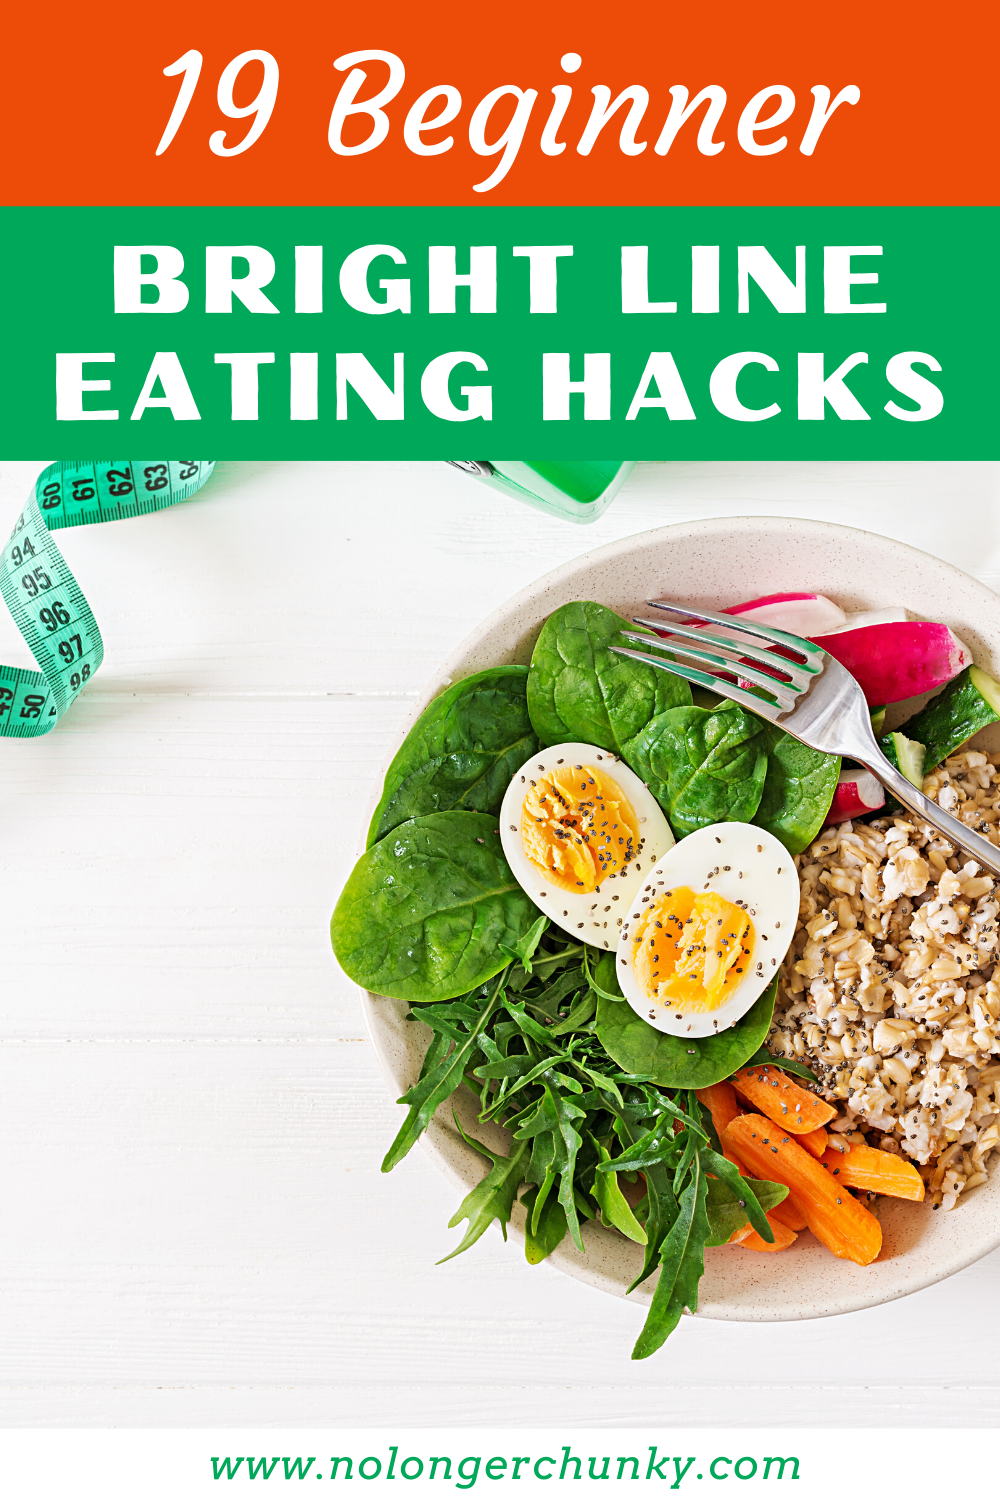 19 Beginner Bright Line Eating Hacks 3